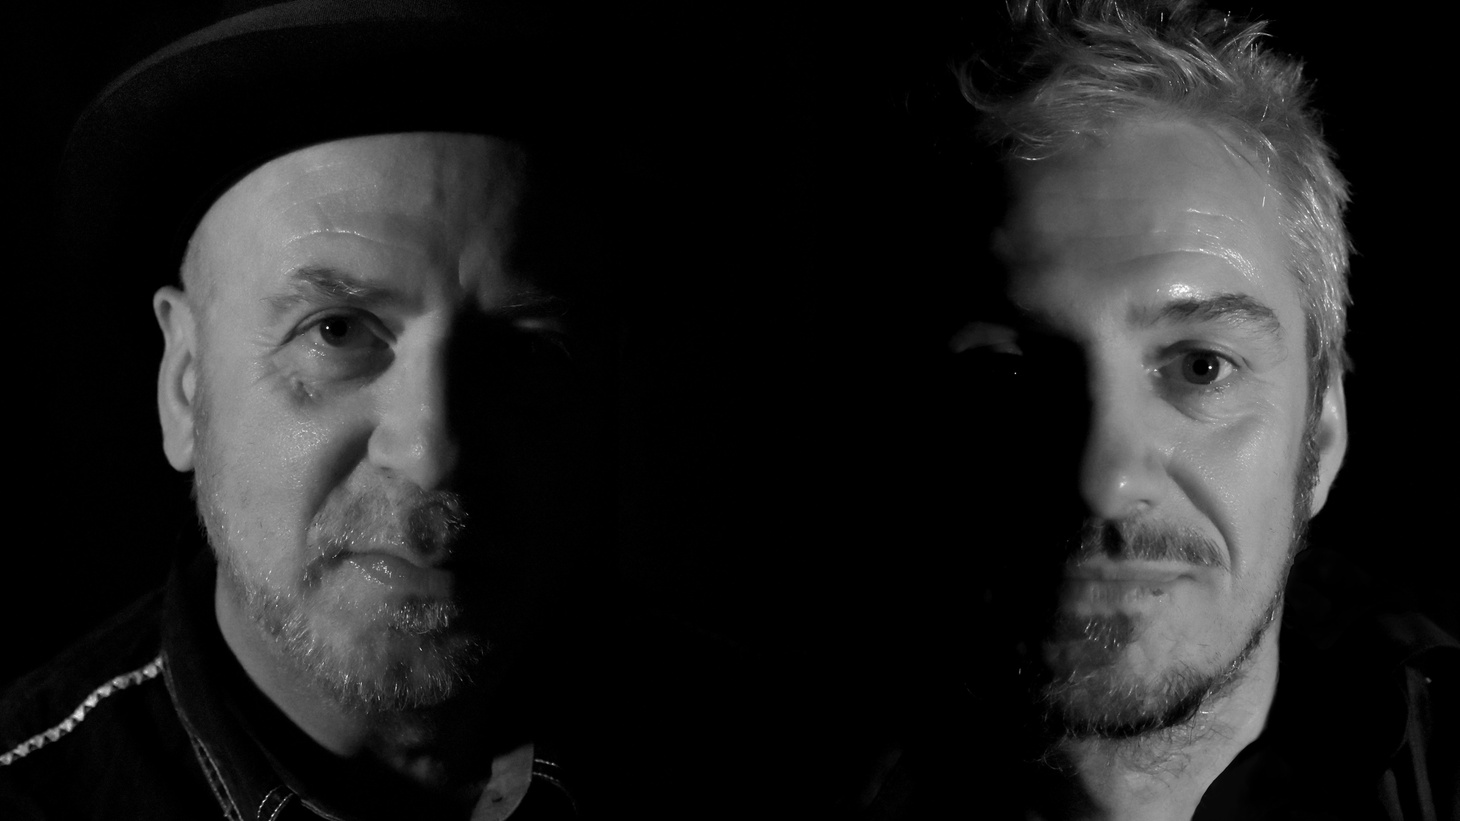 Cocteau Twins bassist Simon Raymonde and Dif Juz drummer Richie Thomas collaborate as Lost Horizons. Joined by a cast of singers, they pledged to make it fun, never a chore -- and always improvised.